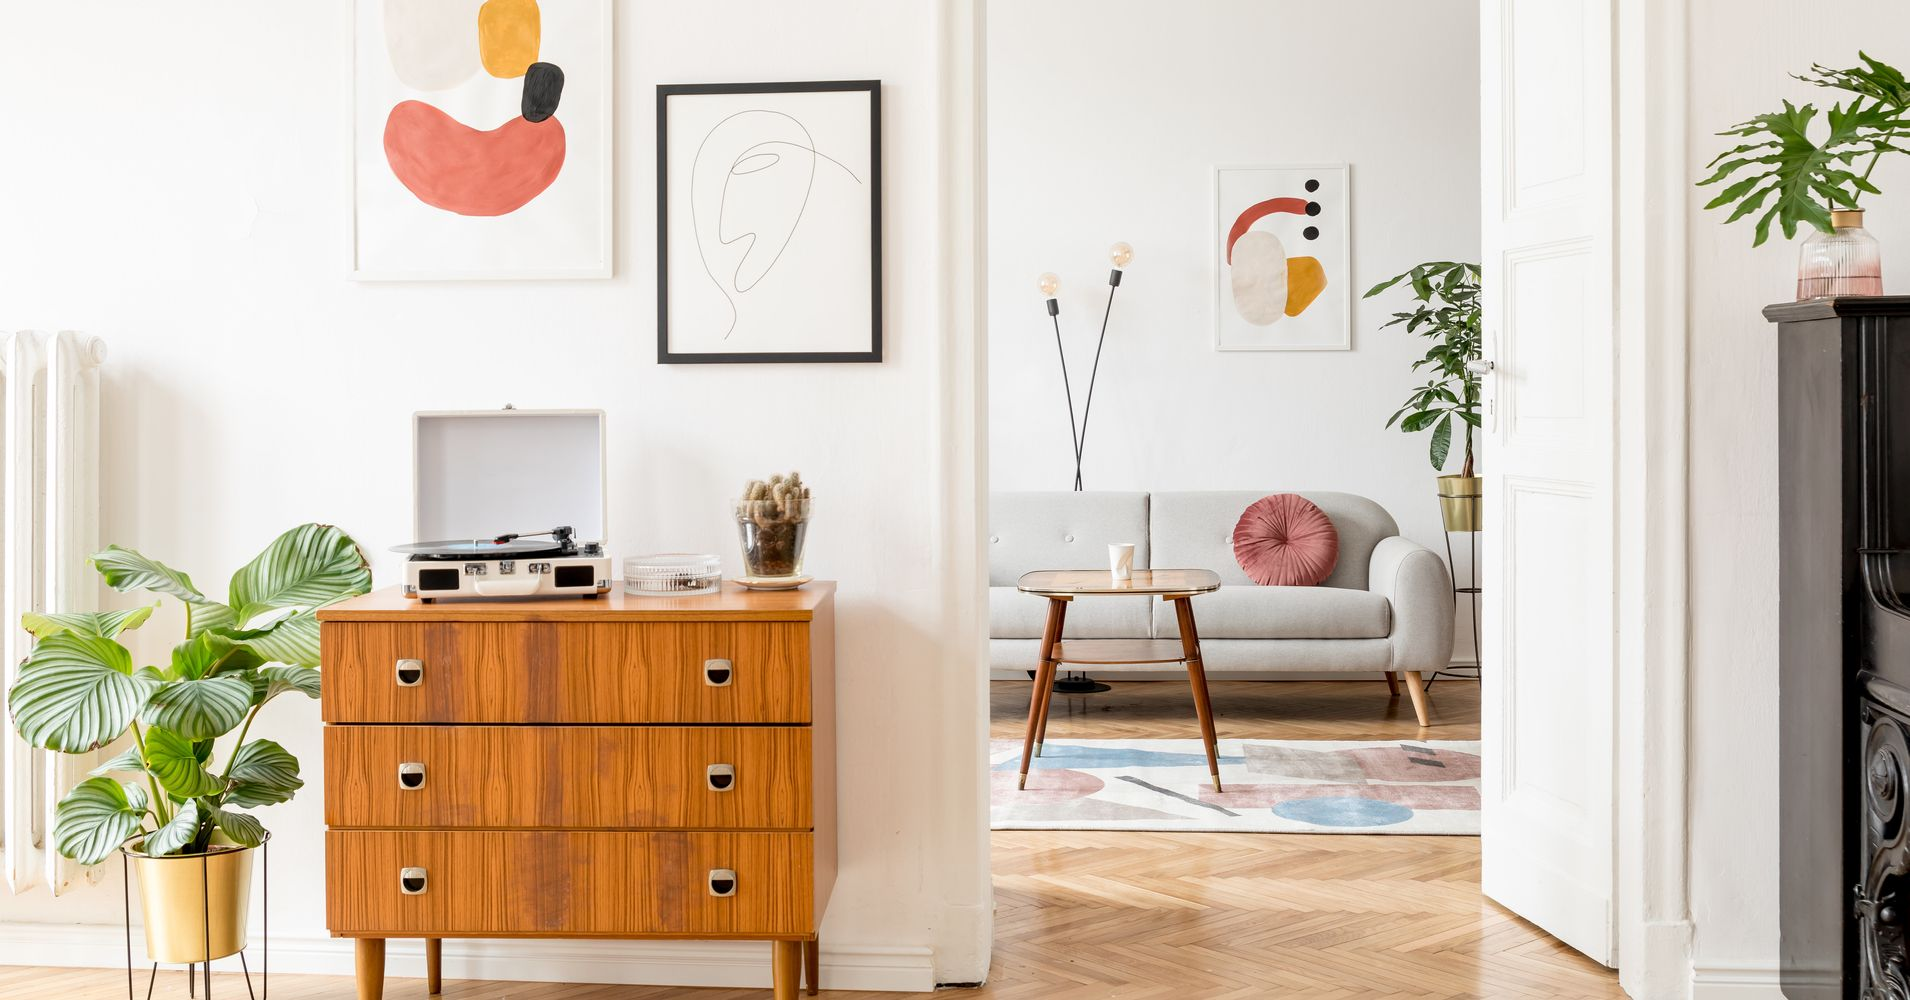 14 furniture stores like west elm to buy mid century modern home decor huffpost life